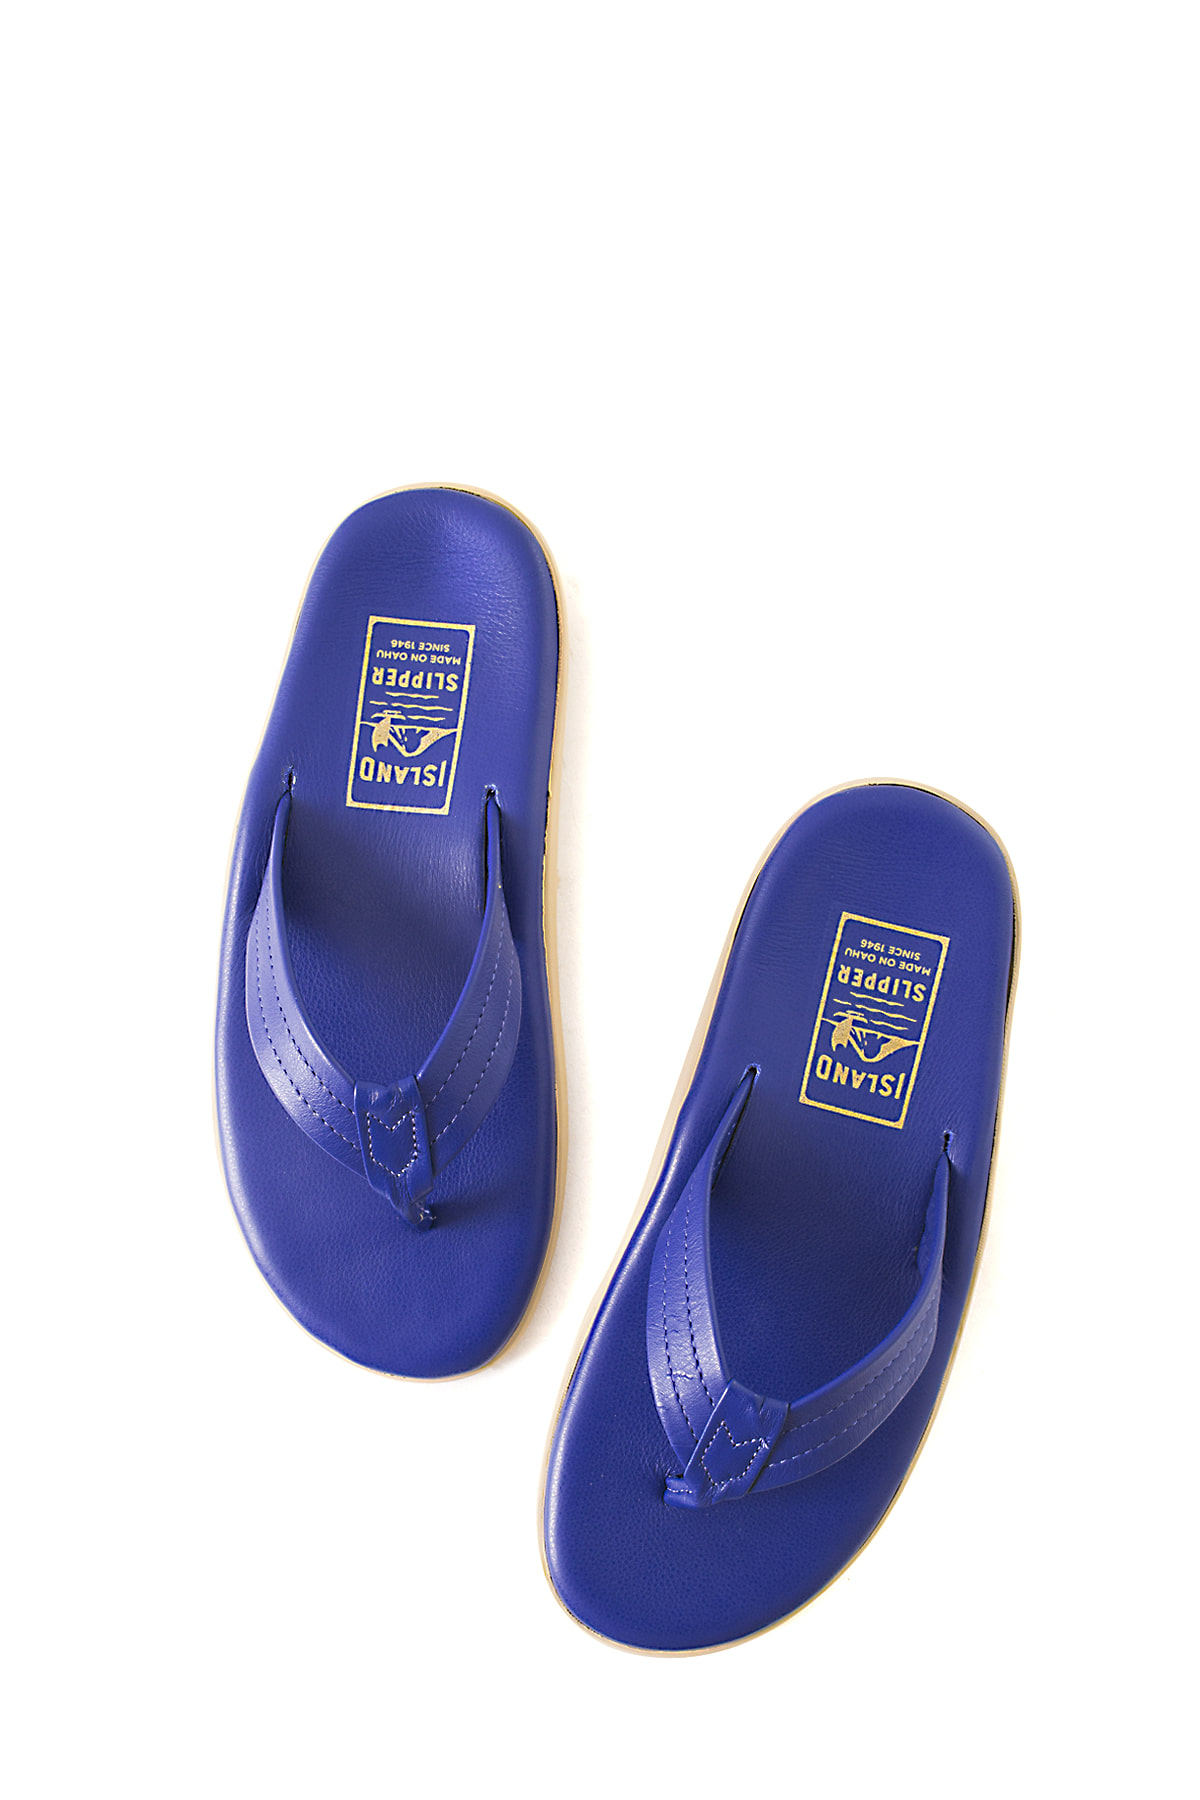 ISLAND SLIPPER : PT202 (Royal Blue)